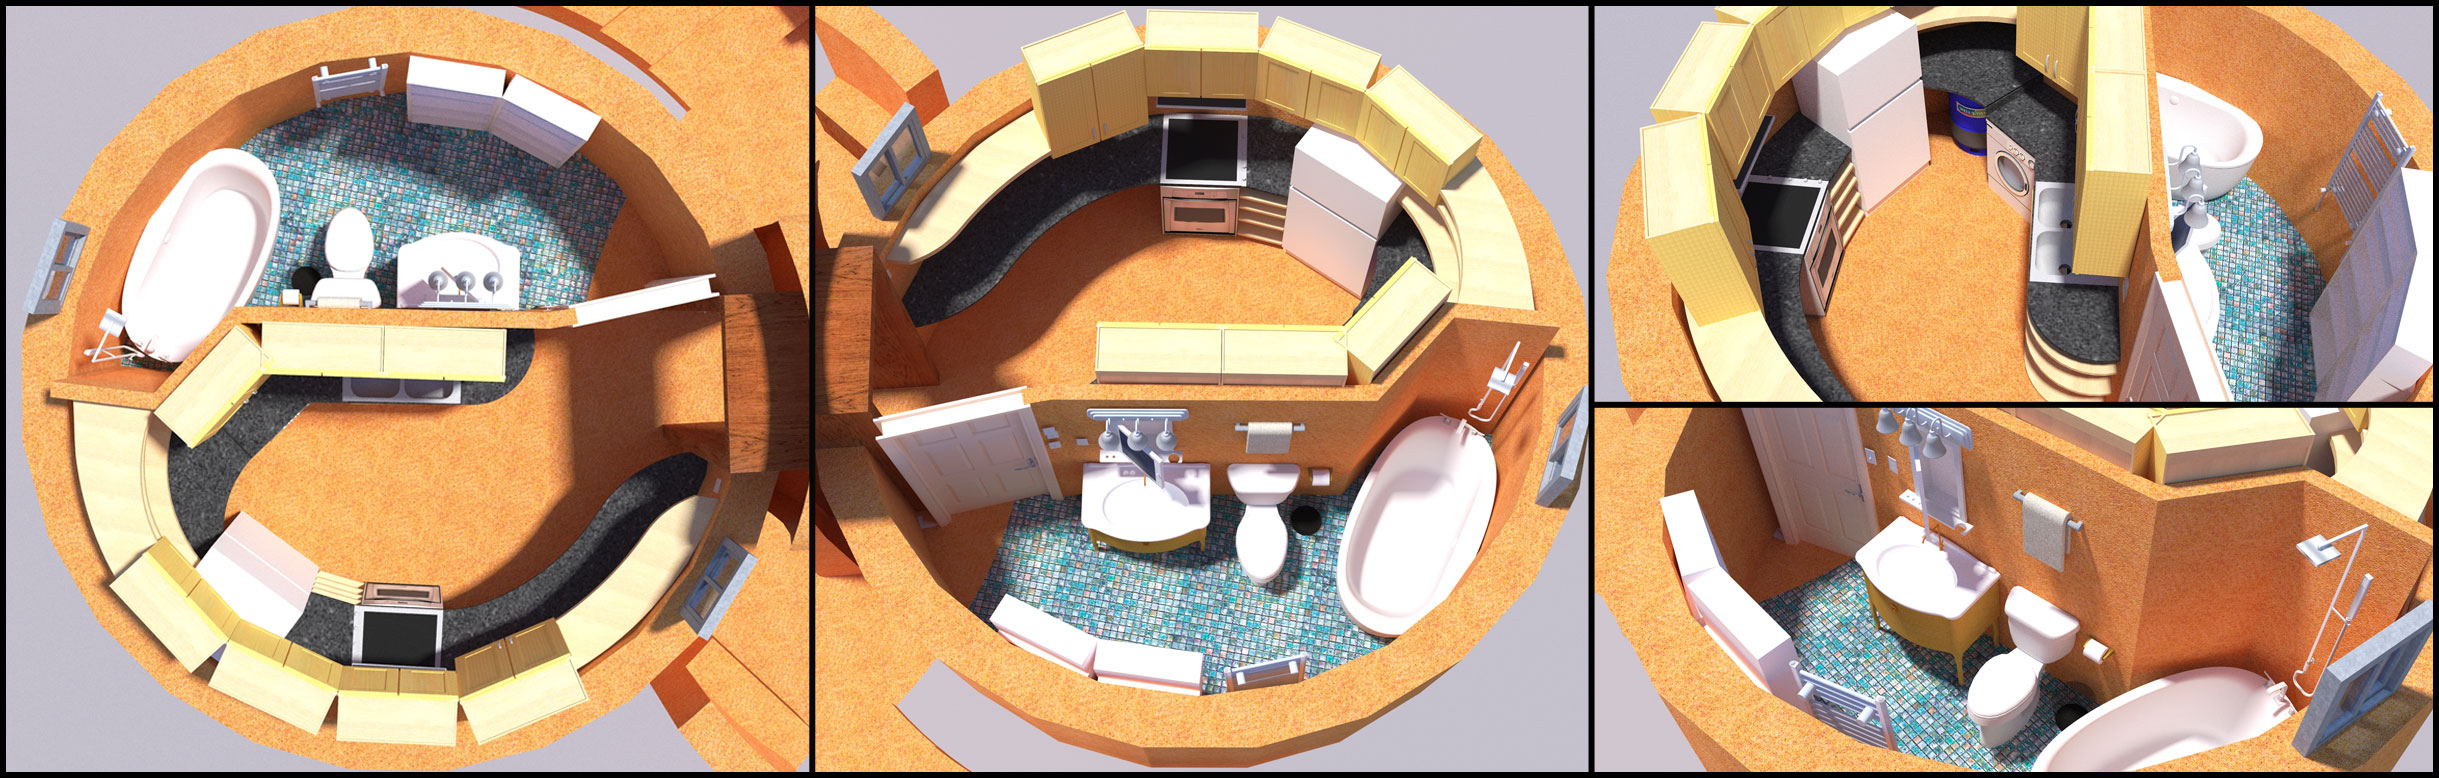 Monolithic Dome Floor Plans Earthbag And Aircrete Dome Home Crowdfunding